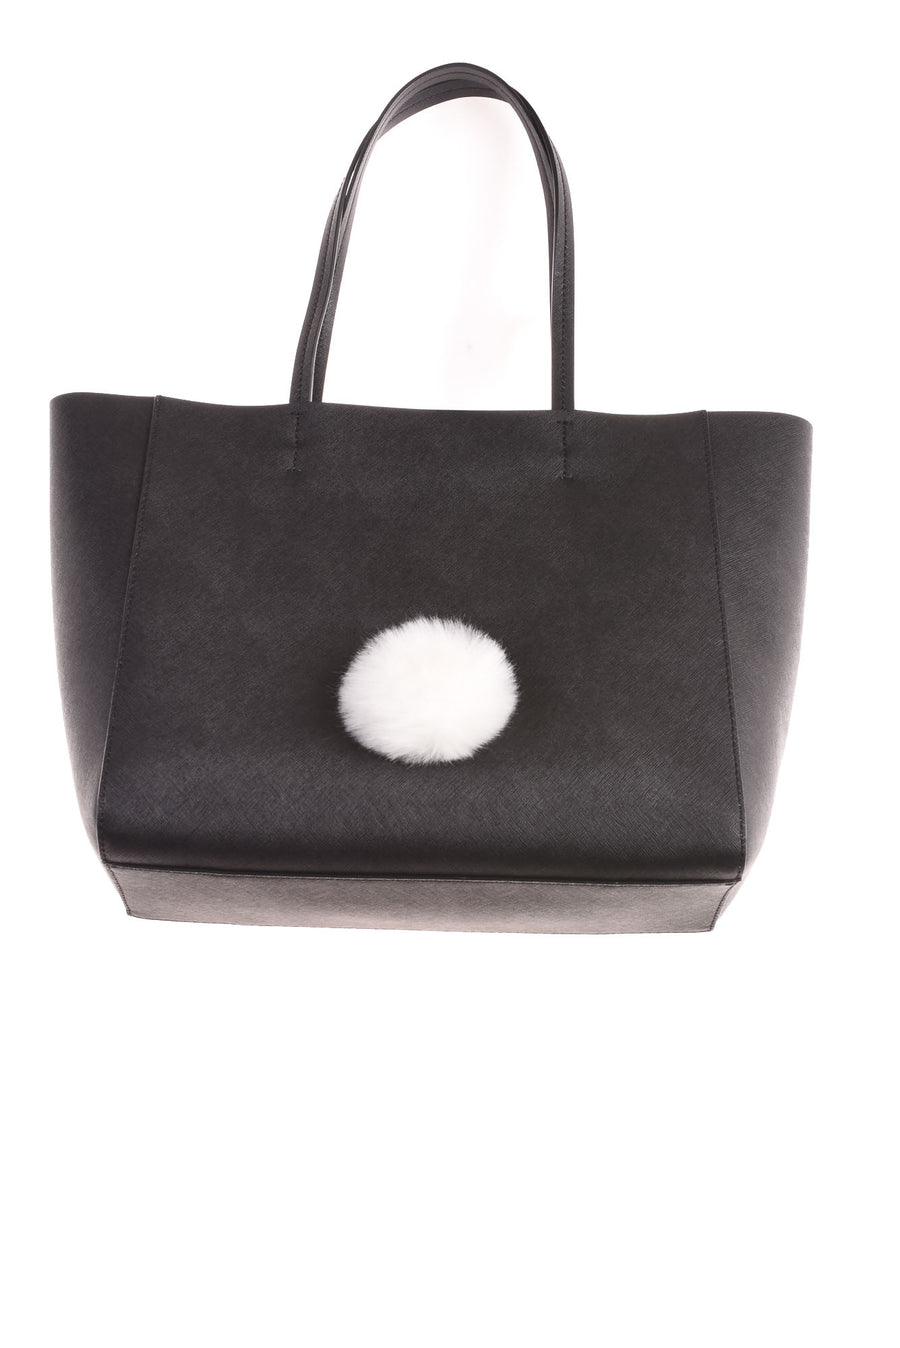 USED Kate Spade Women's Handbag N/A Black